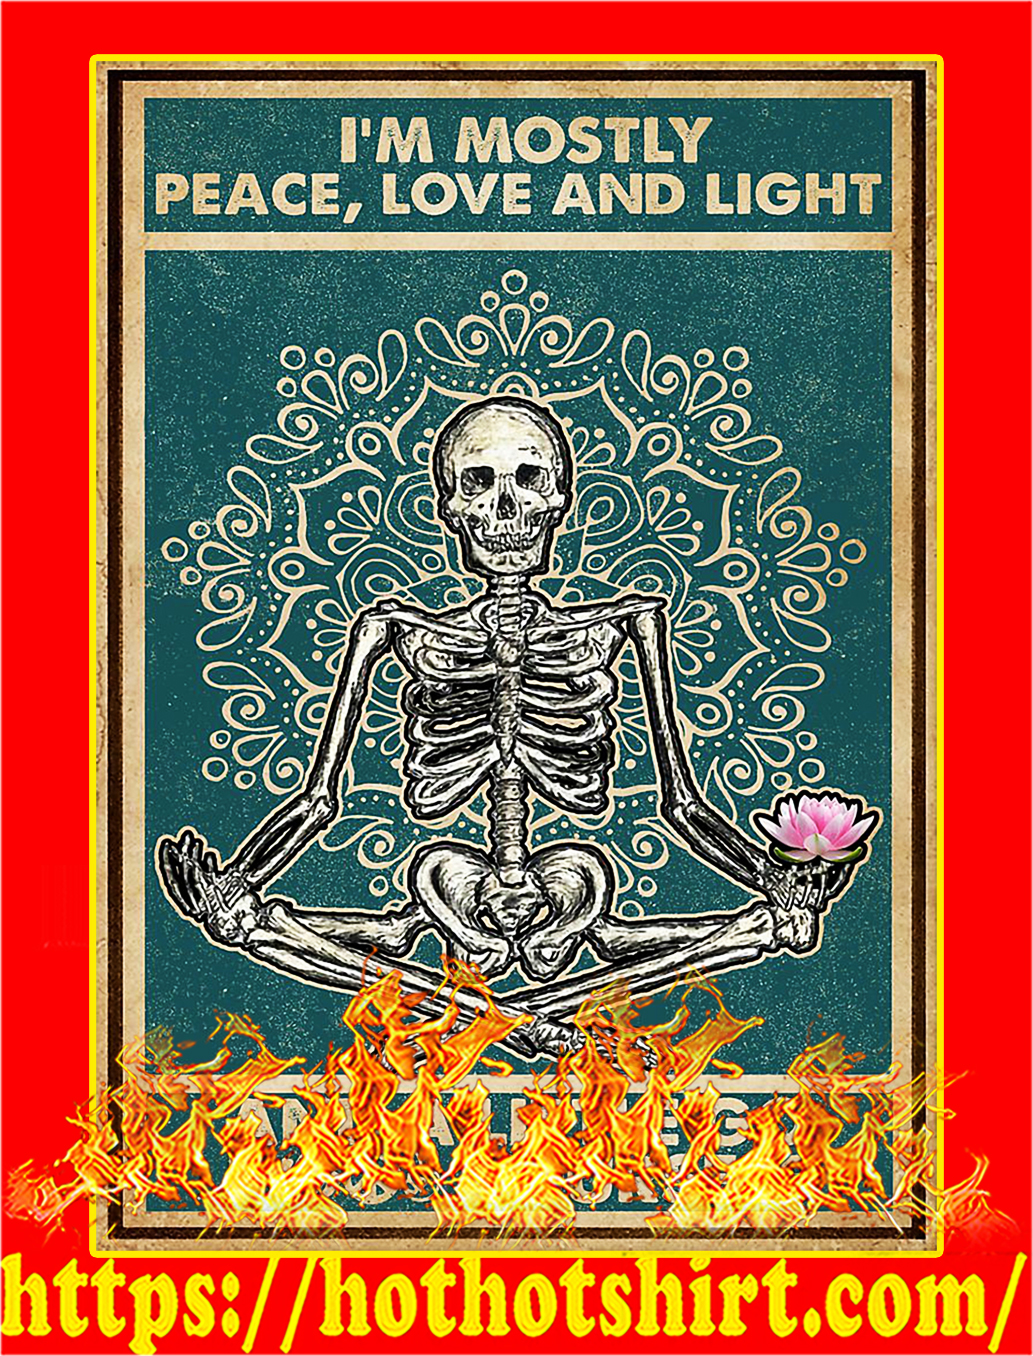 I'm mostly peace love and light and a little go fuck yourself poster - A3